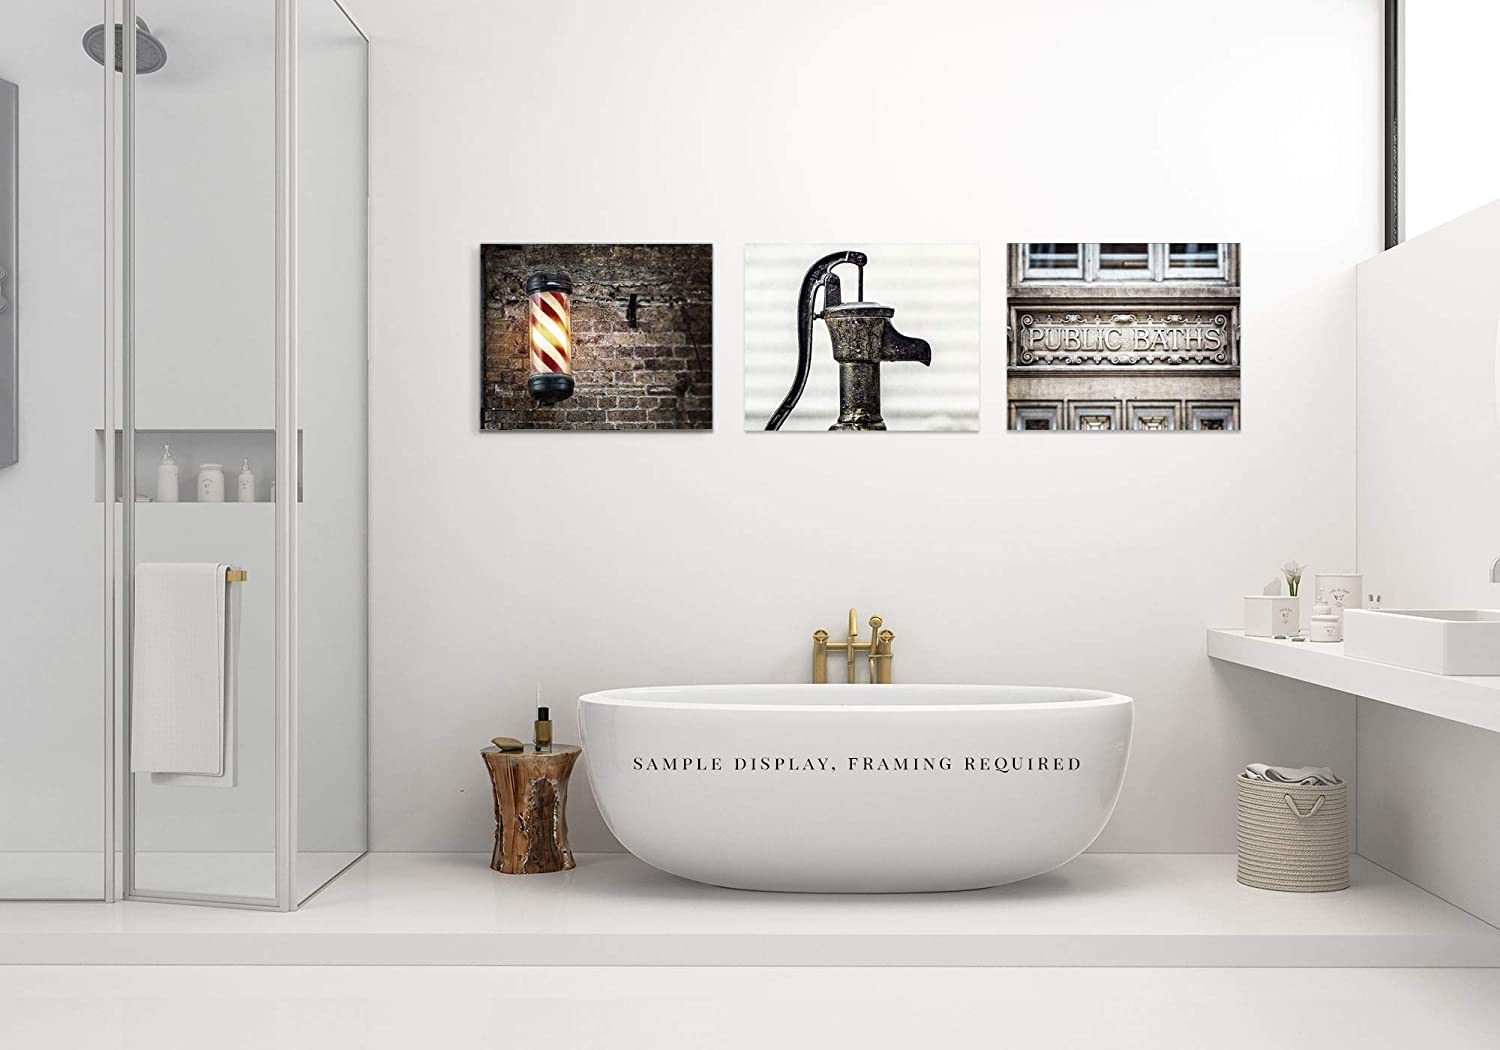 Bathroom Pictures for Men Modern Industrial Bathroom Wall Art Decor Set of 3 Gray 8x10 Red or 16x20. FBM3L Prints 11x14 5x7 Not Framed Black